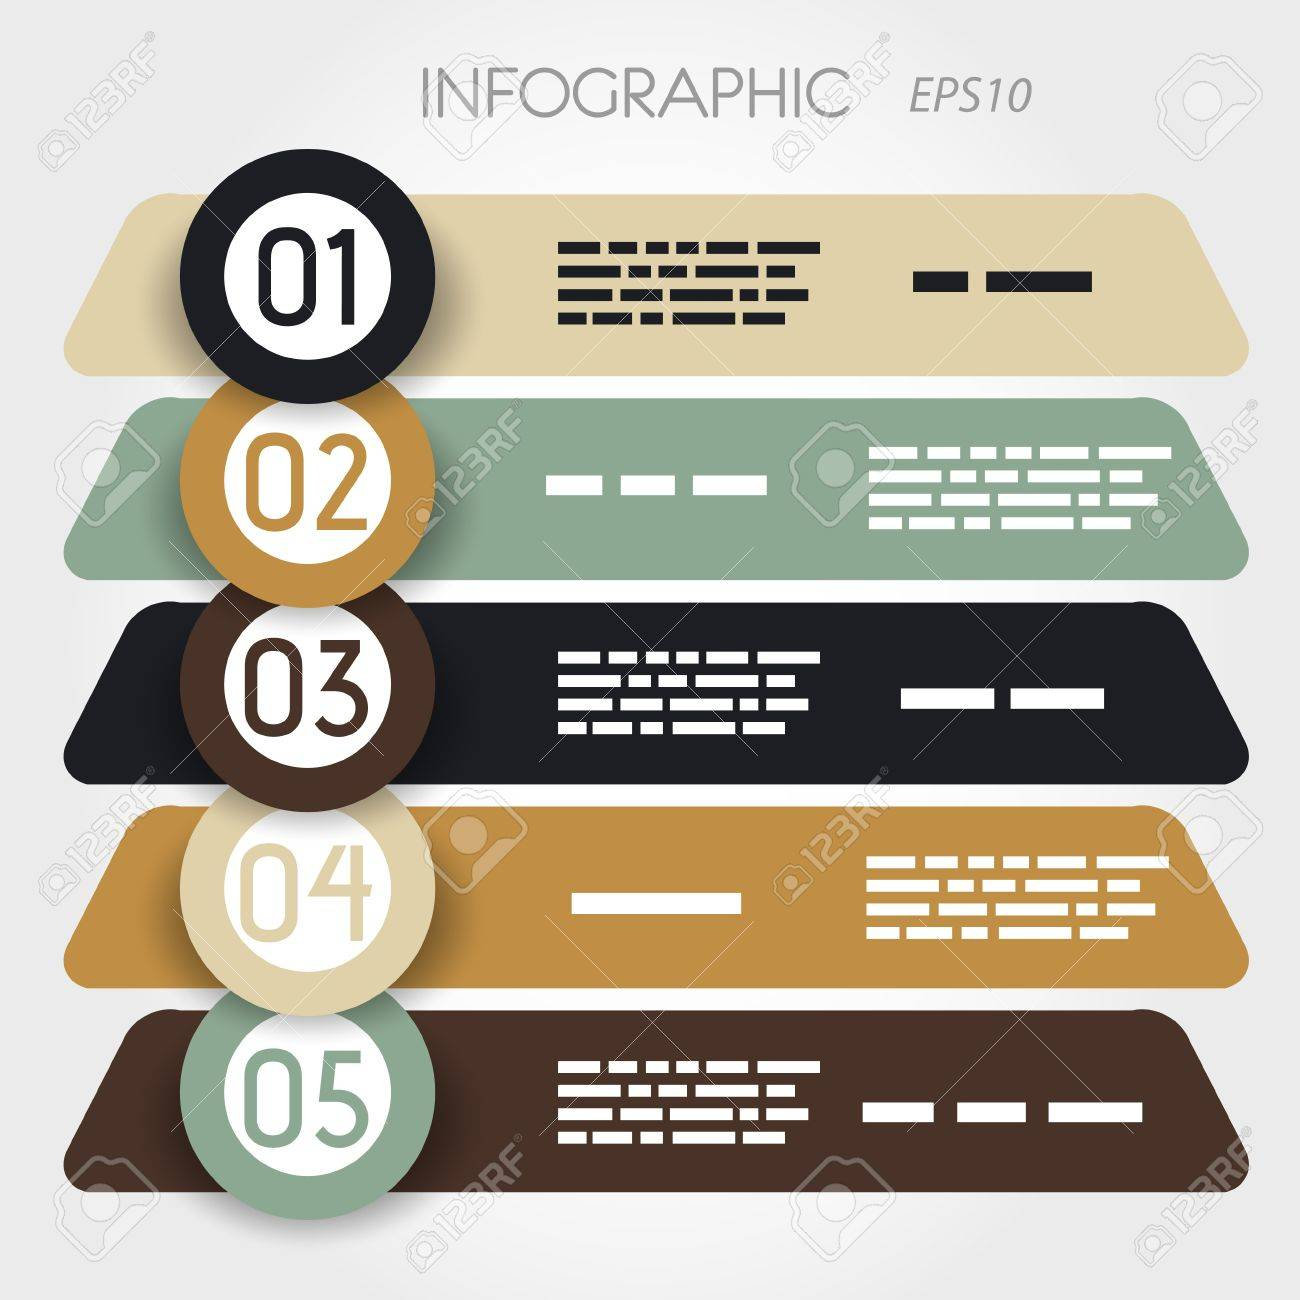 rouned oblique infographic five options in big rings. infographic concept. Stock Vector - 20135854